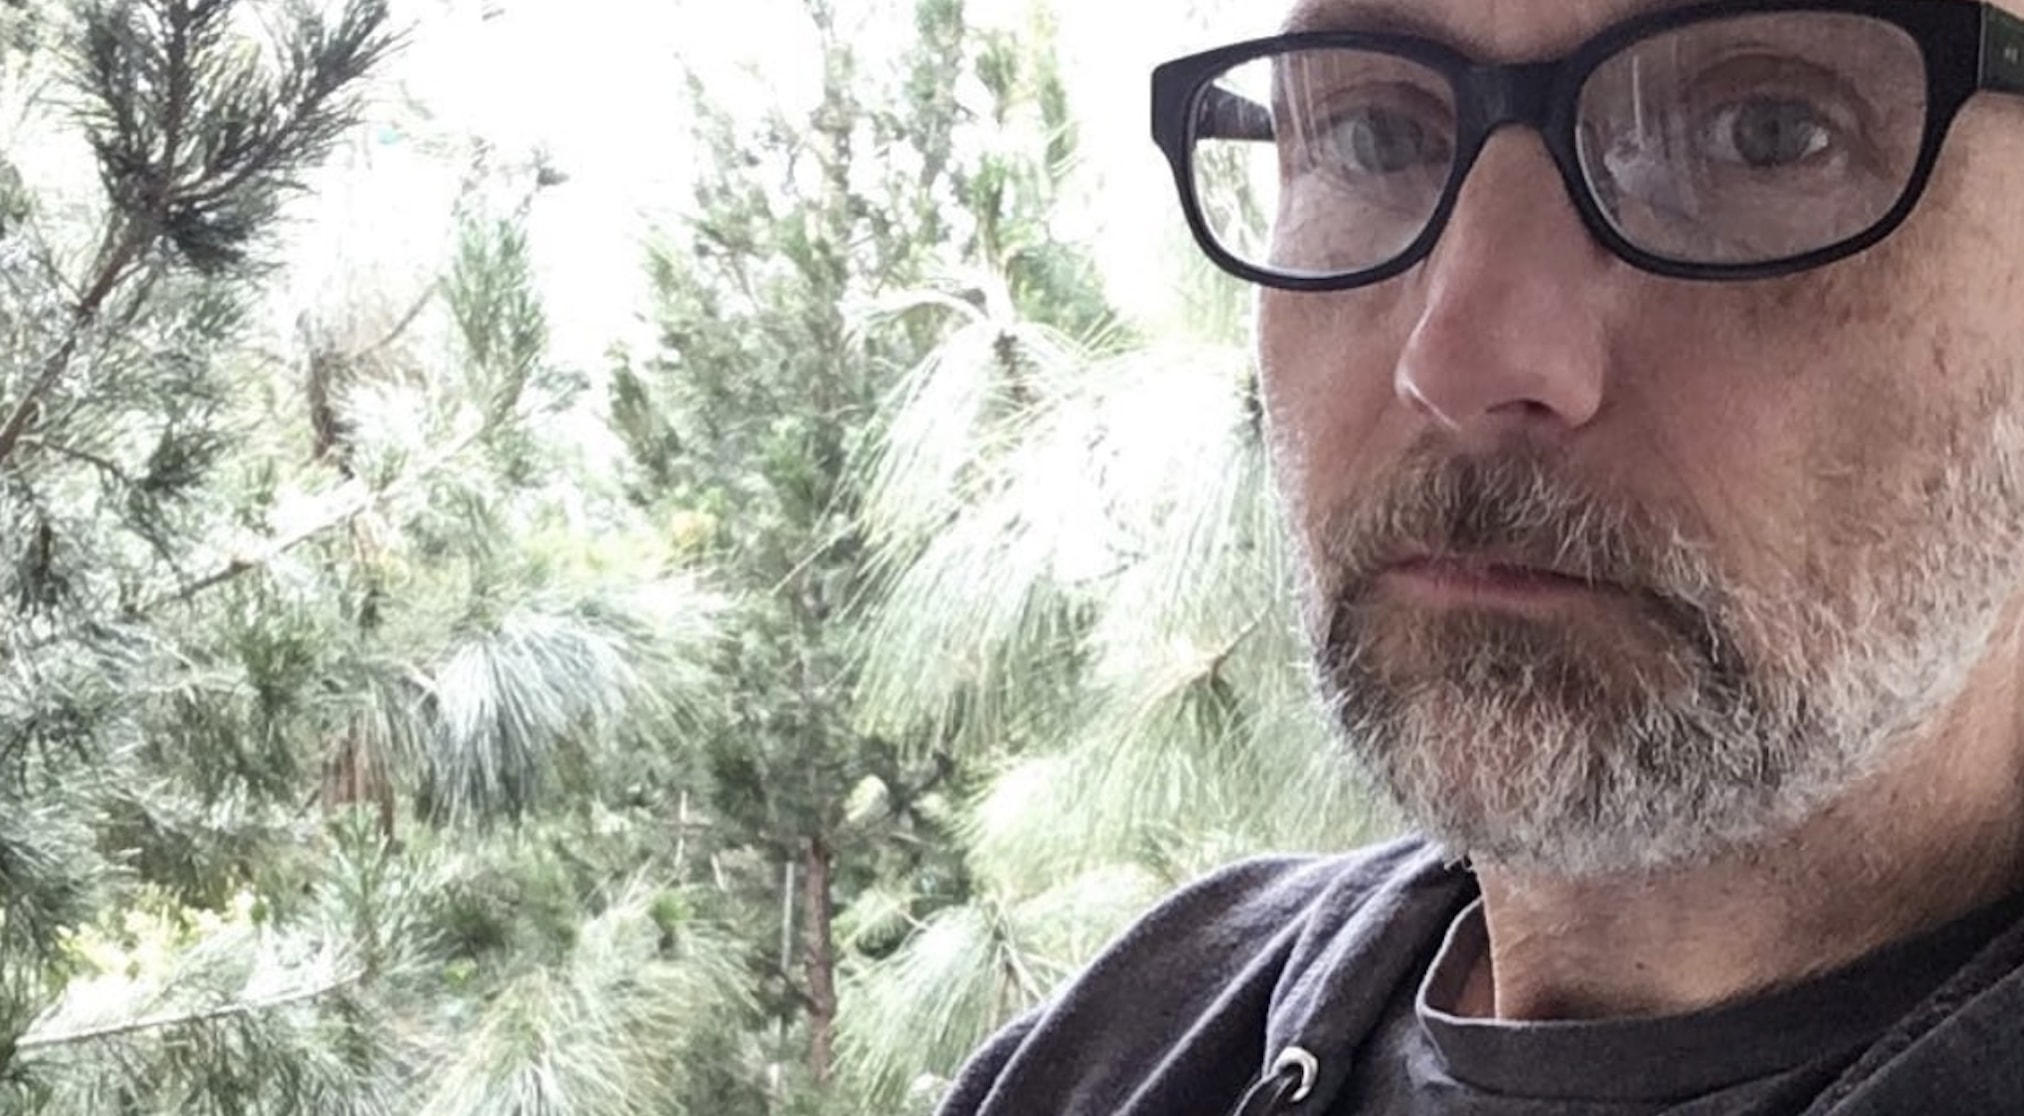 Musician moby at his California home